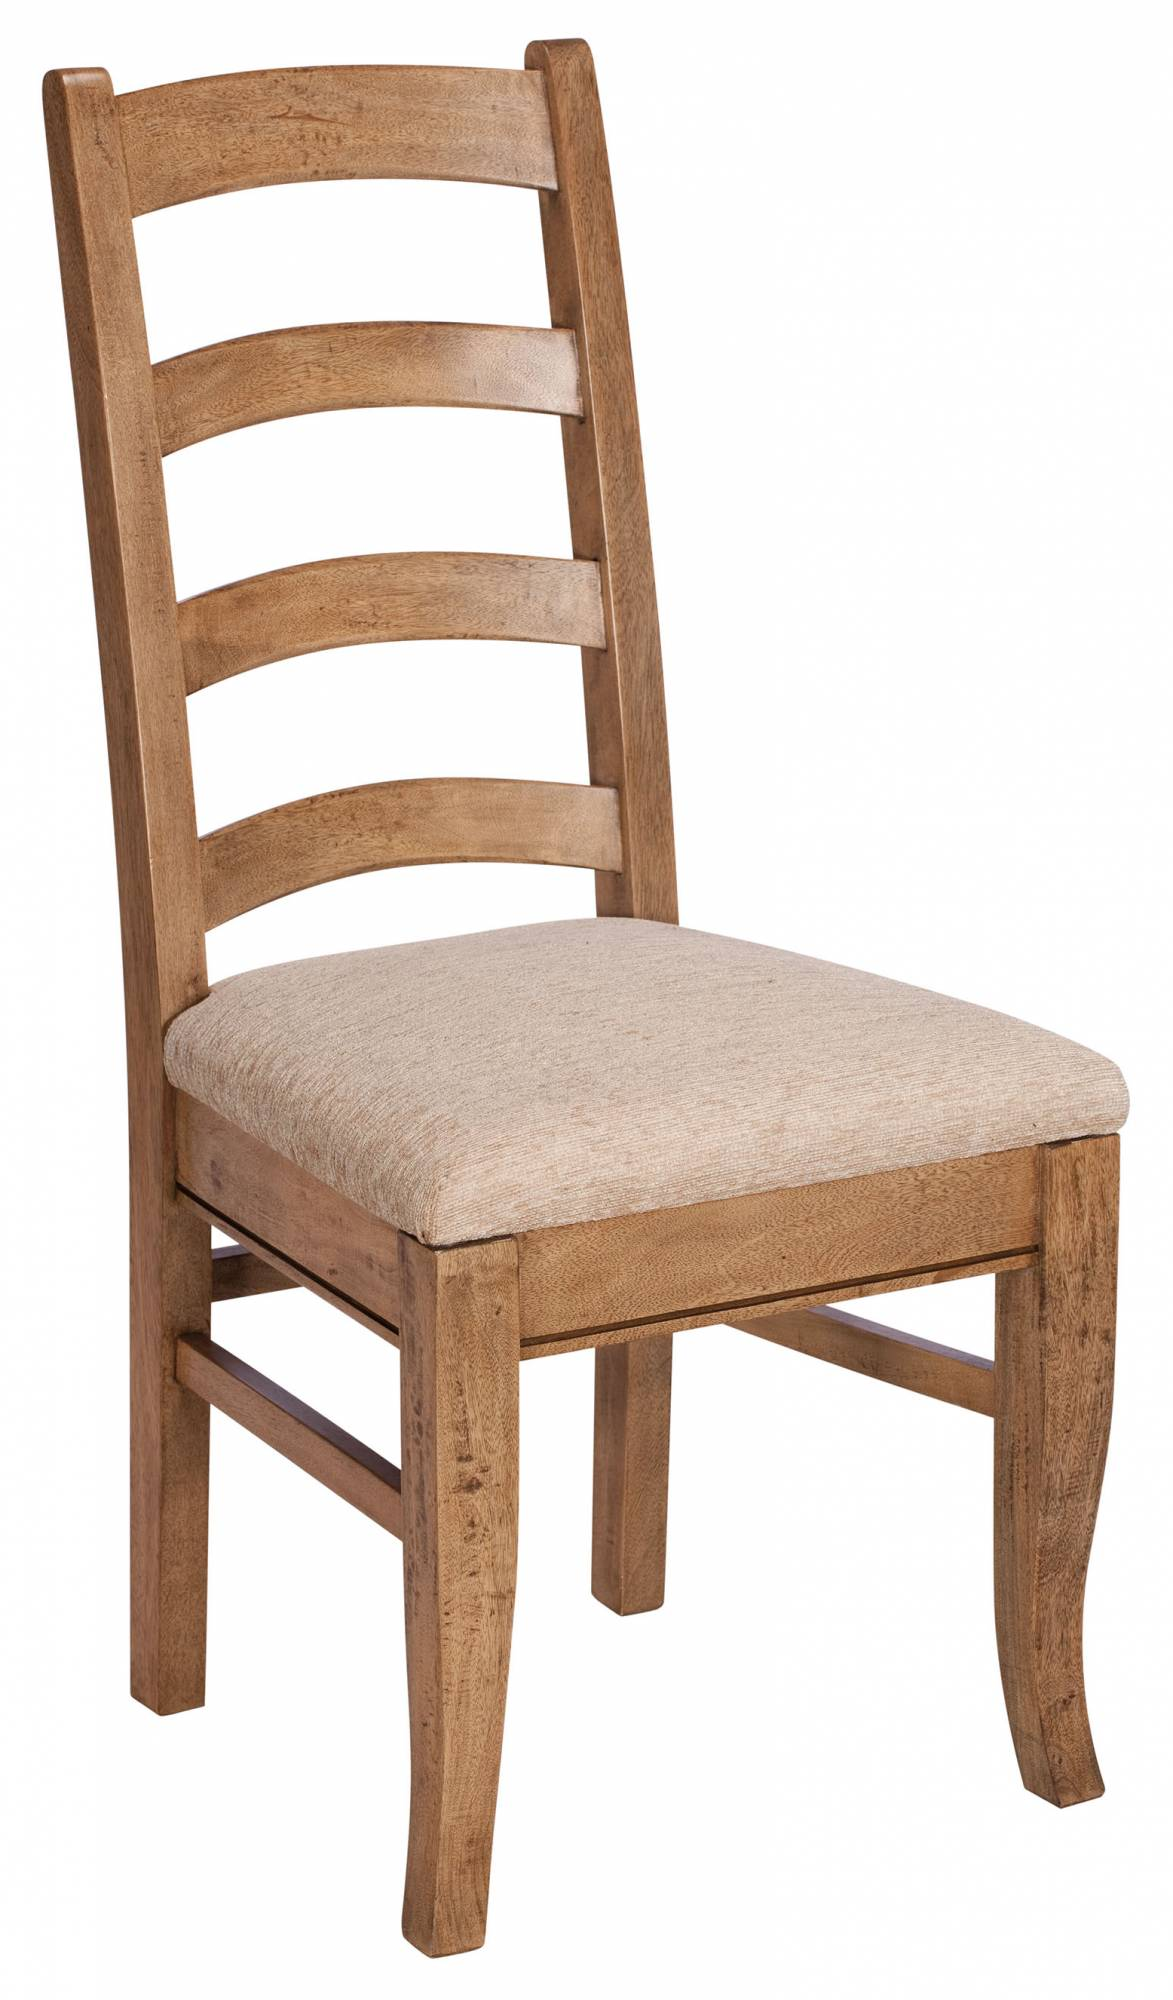 Worcester ladder back dining chair dining room furniture hills furniture store - Ladder back dining room chairs ...